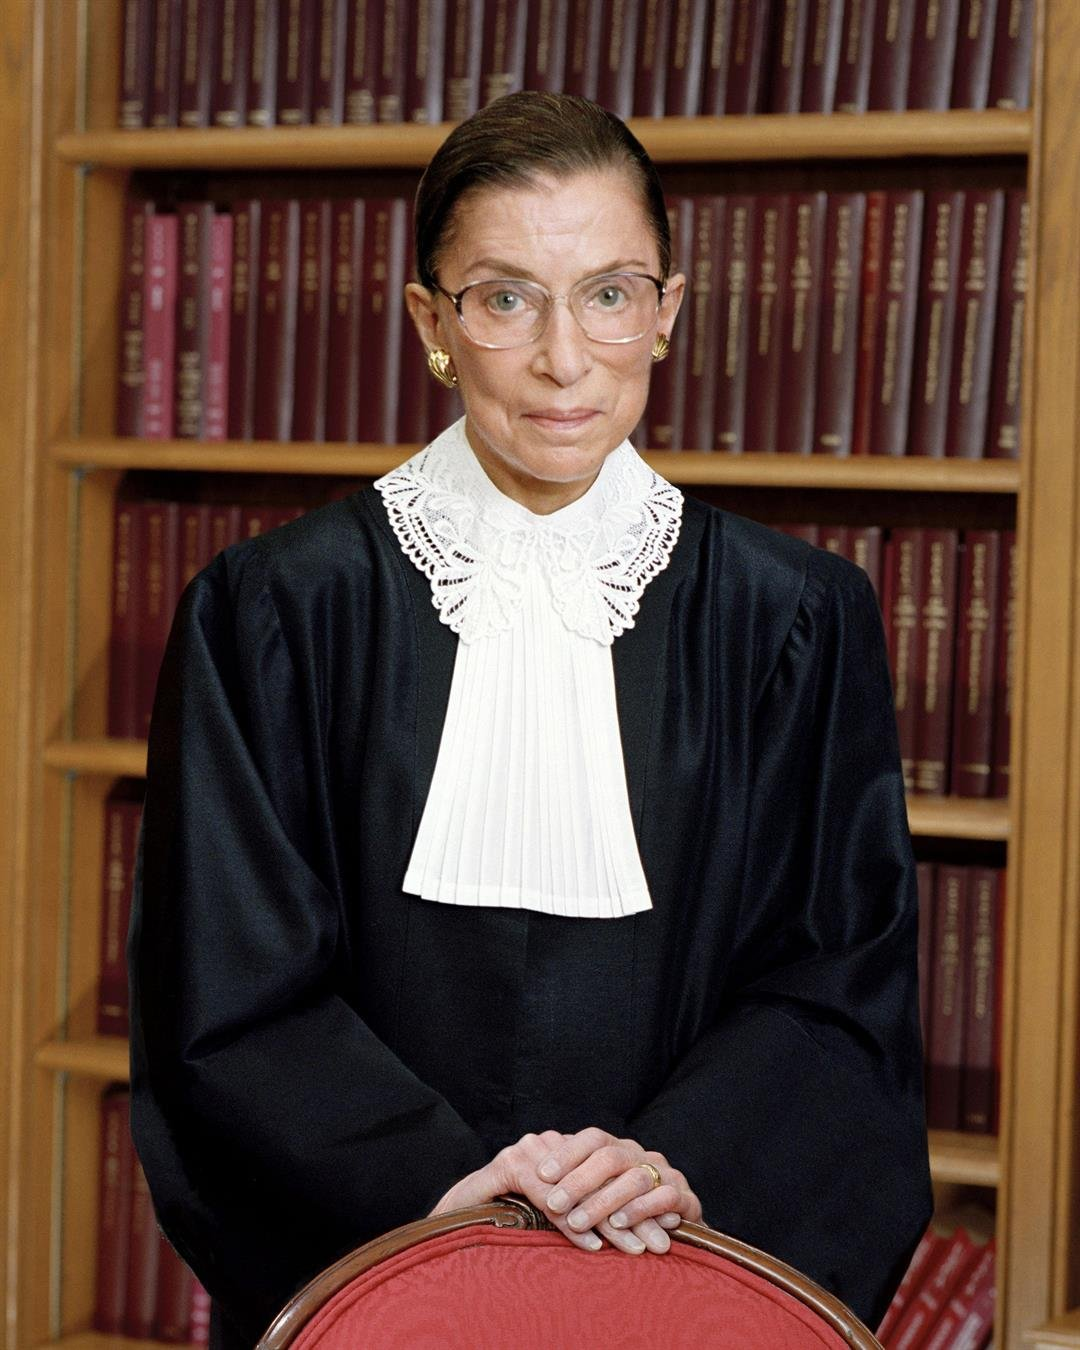 Ginsburg won't attend State of the Union address